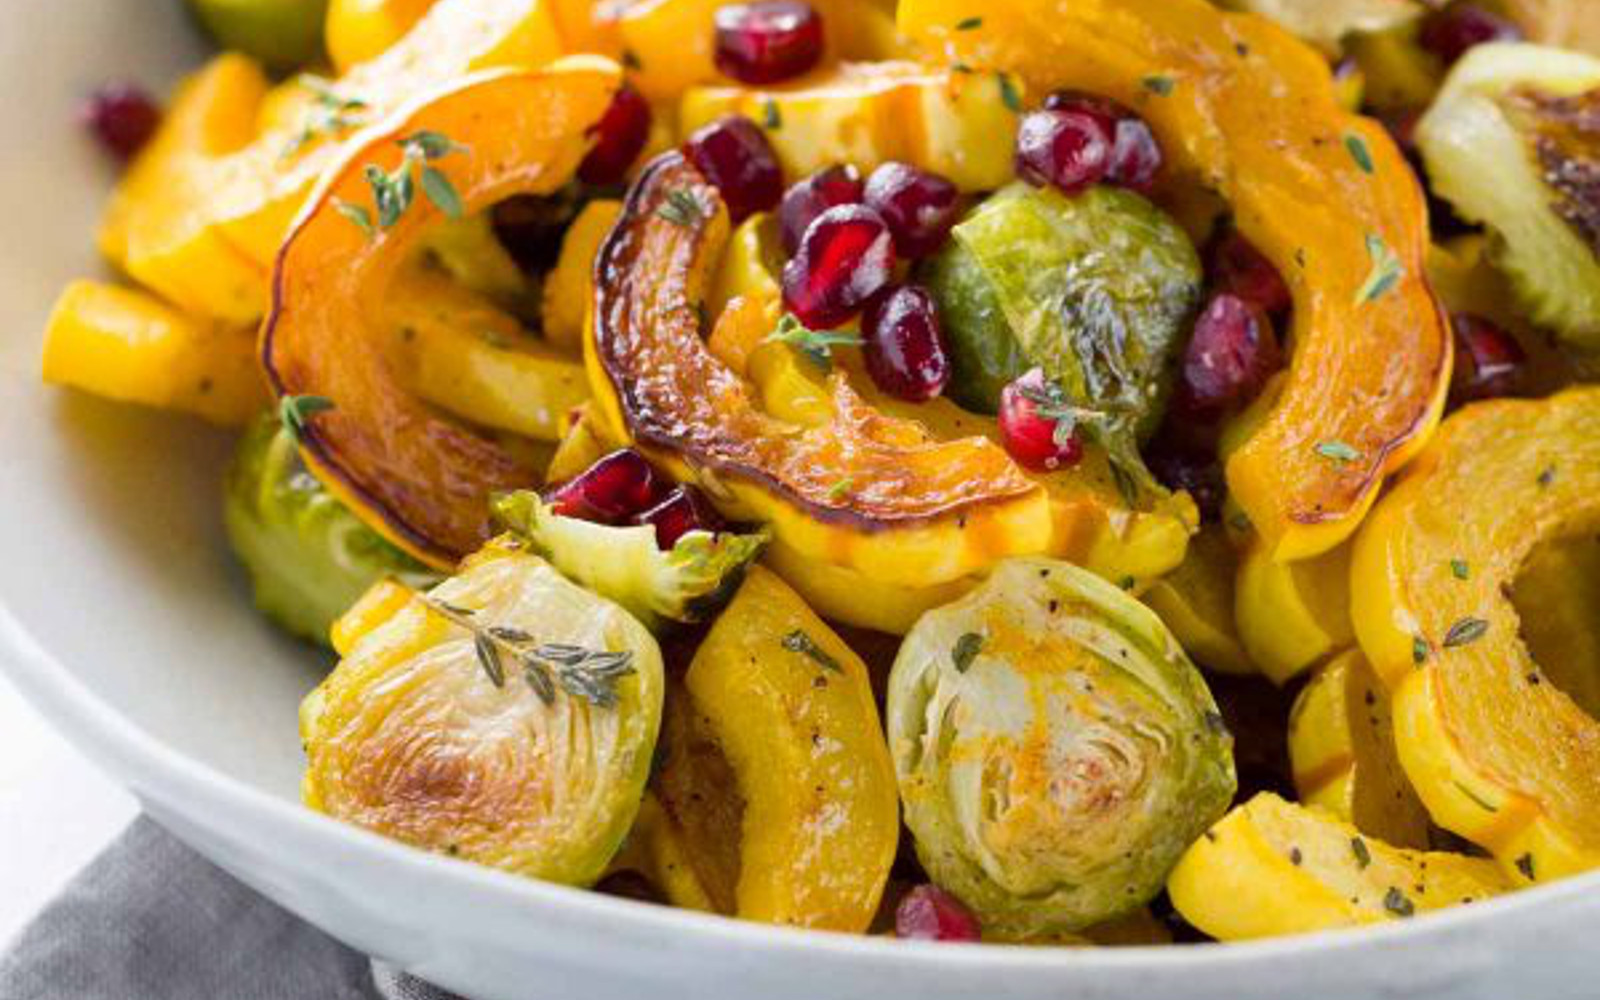 Maple Cinnamon Glazed Roasted Delicata Squash [Vegan]